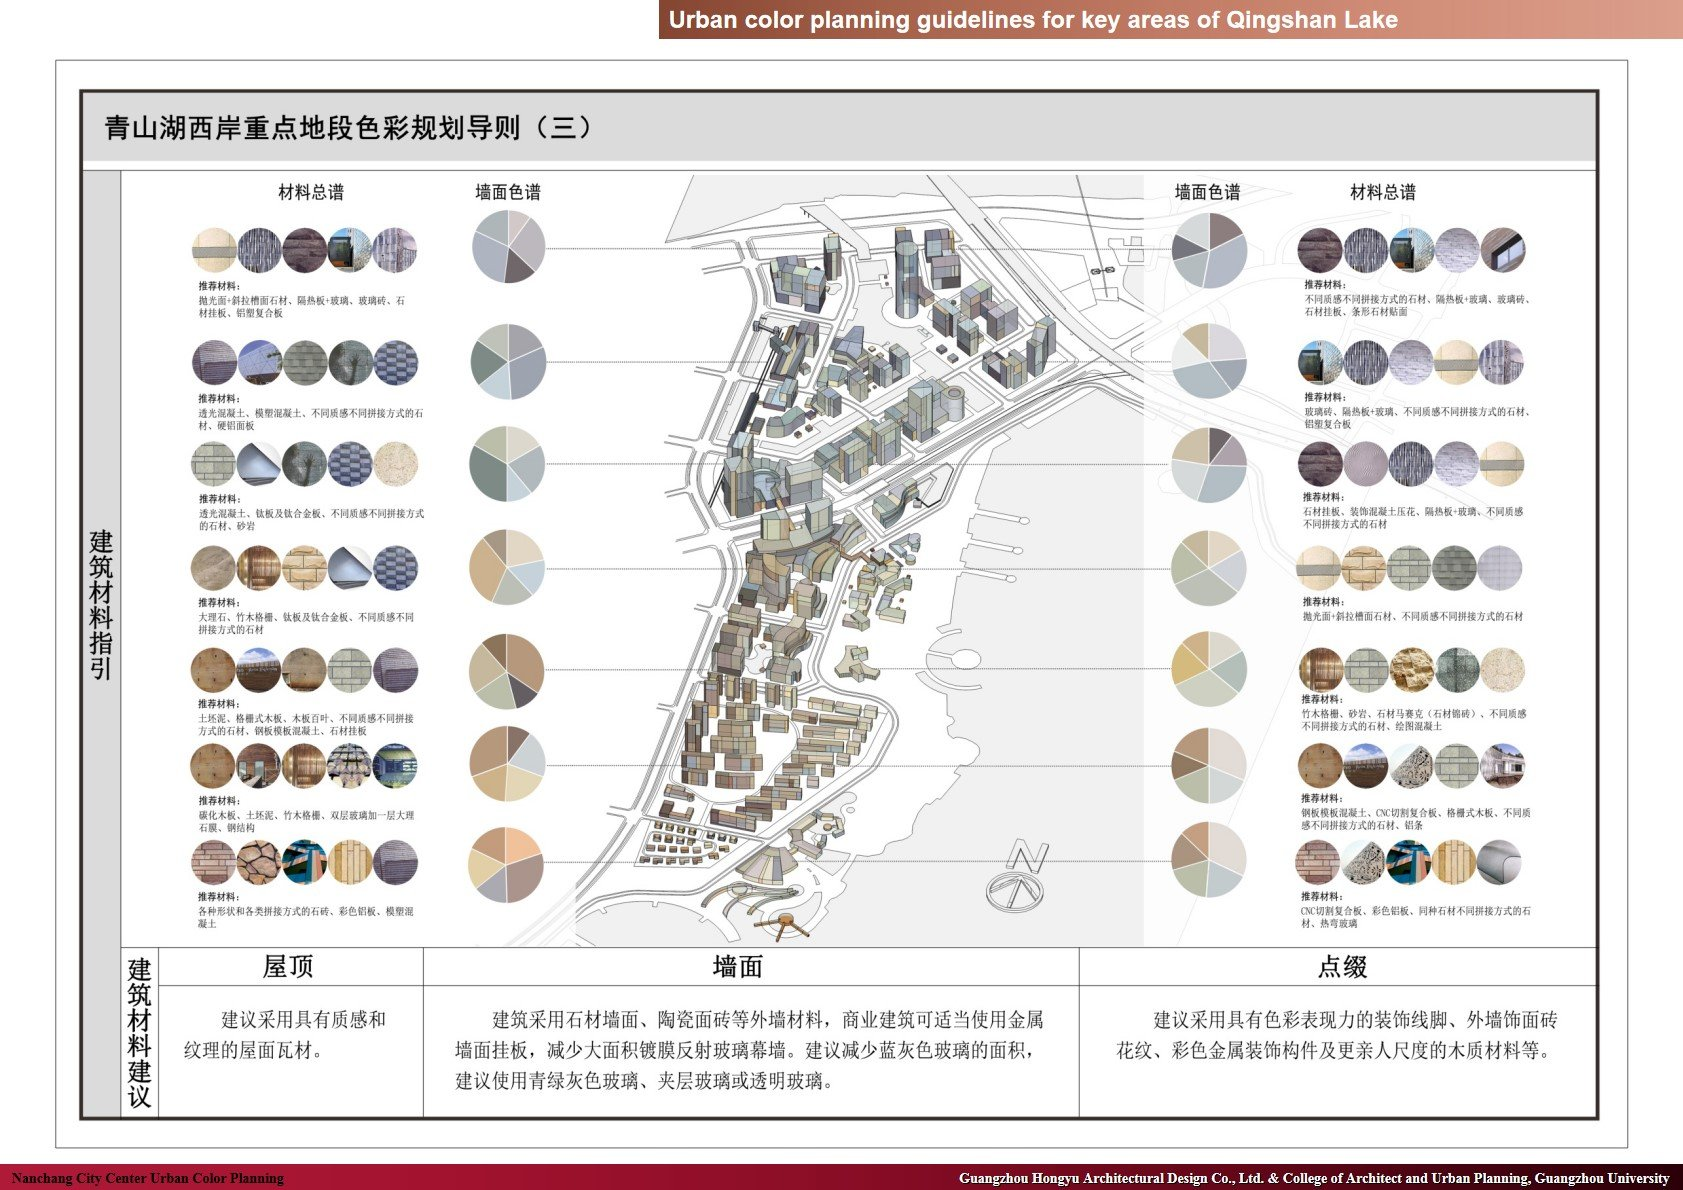 Urban color planning guidelines for key areas of Qingshan Lake Guangzhou Hongyu Architectural Design Co., Ltd. & College of Architect and Urban Planning, Guangzhou University